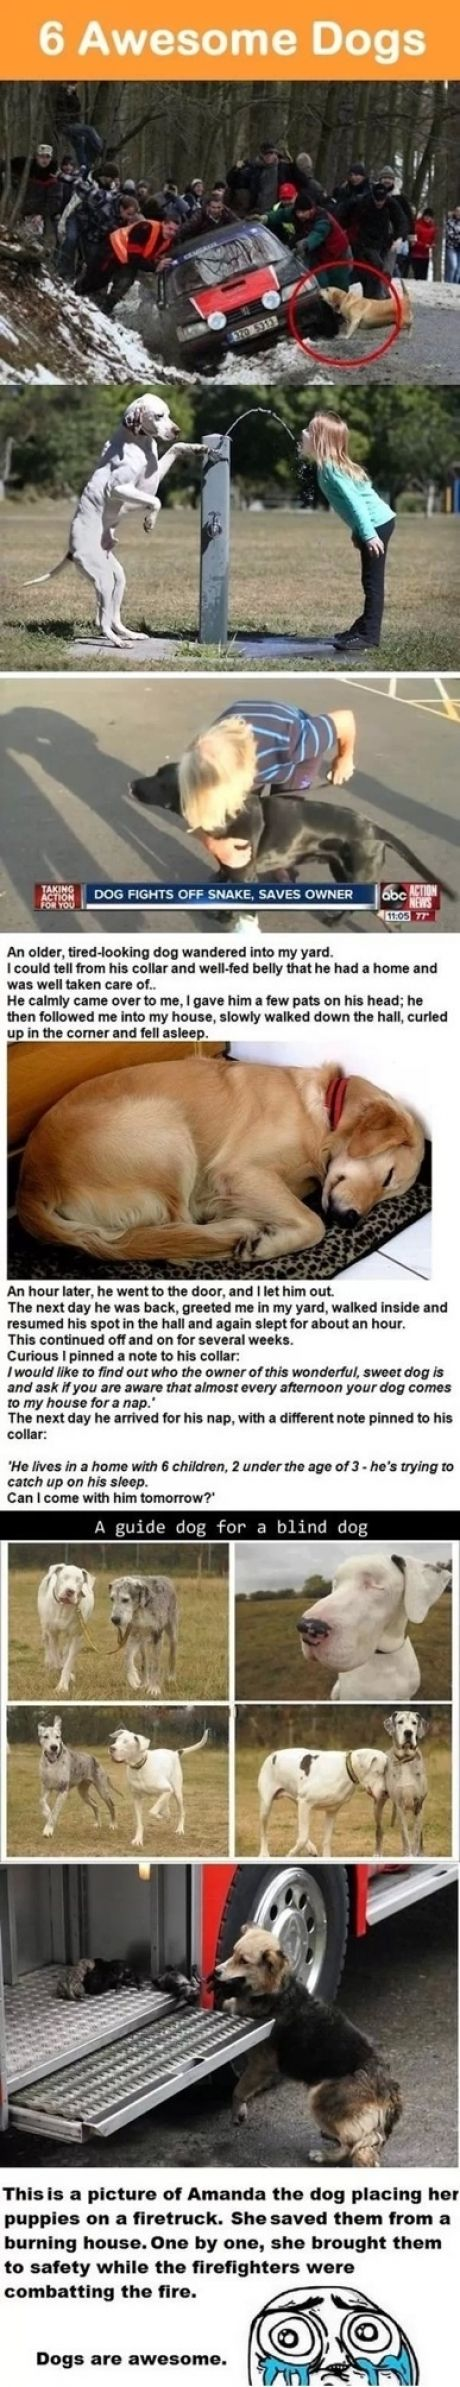 Dogs are Awesome!